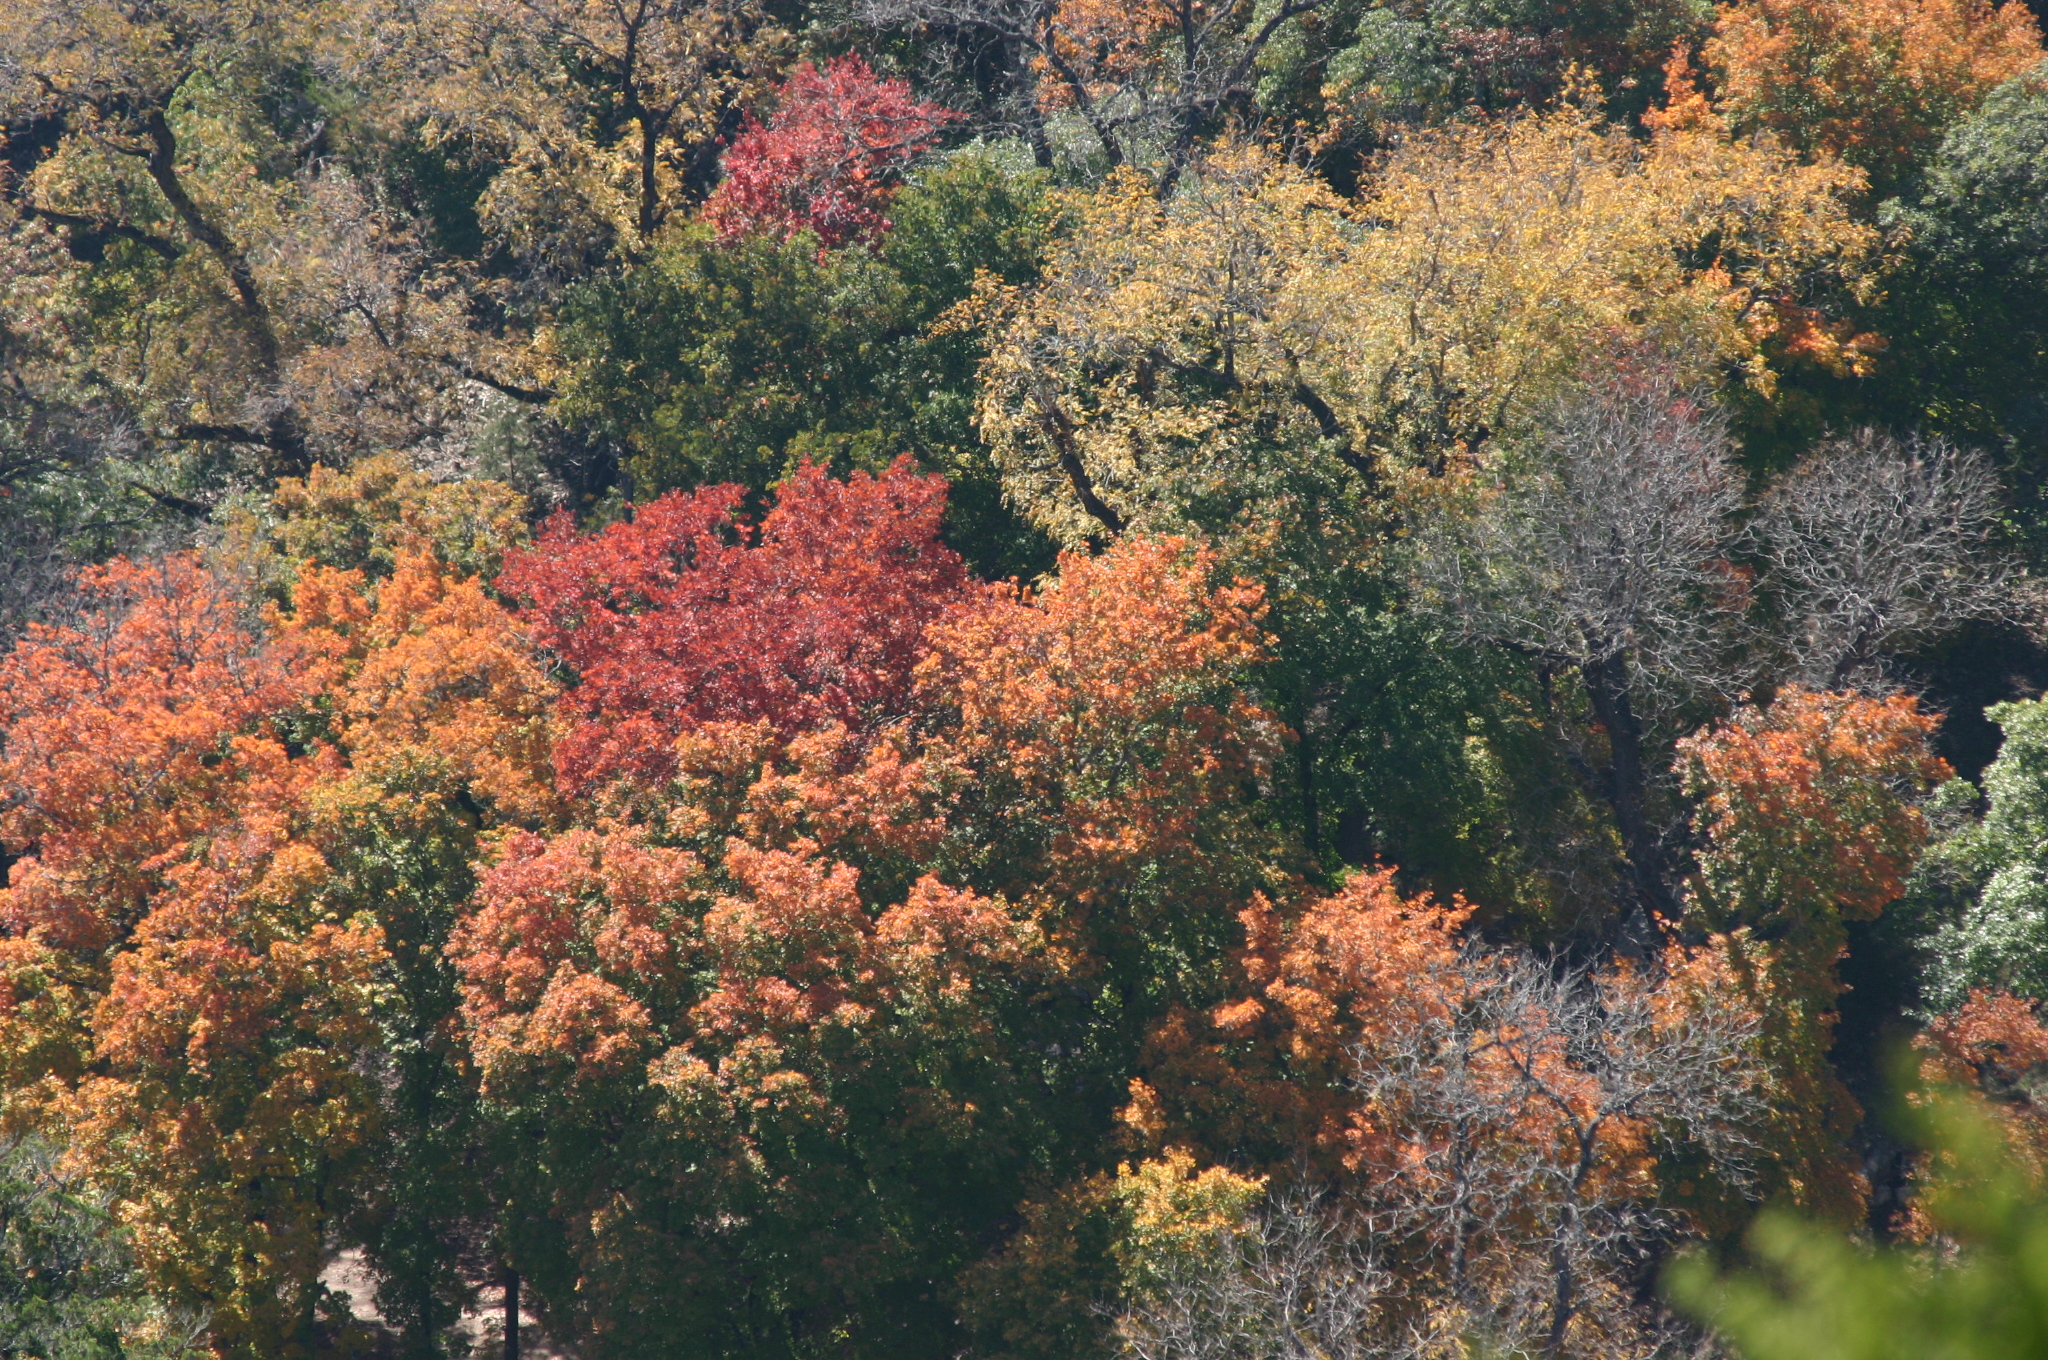 Aerial_View_of_Autumn_Forest_Colors